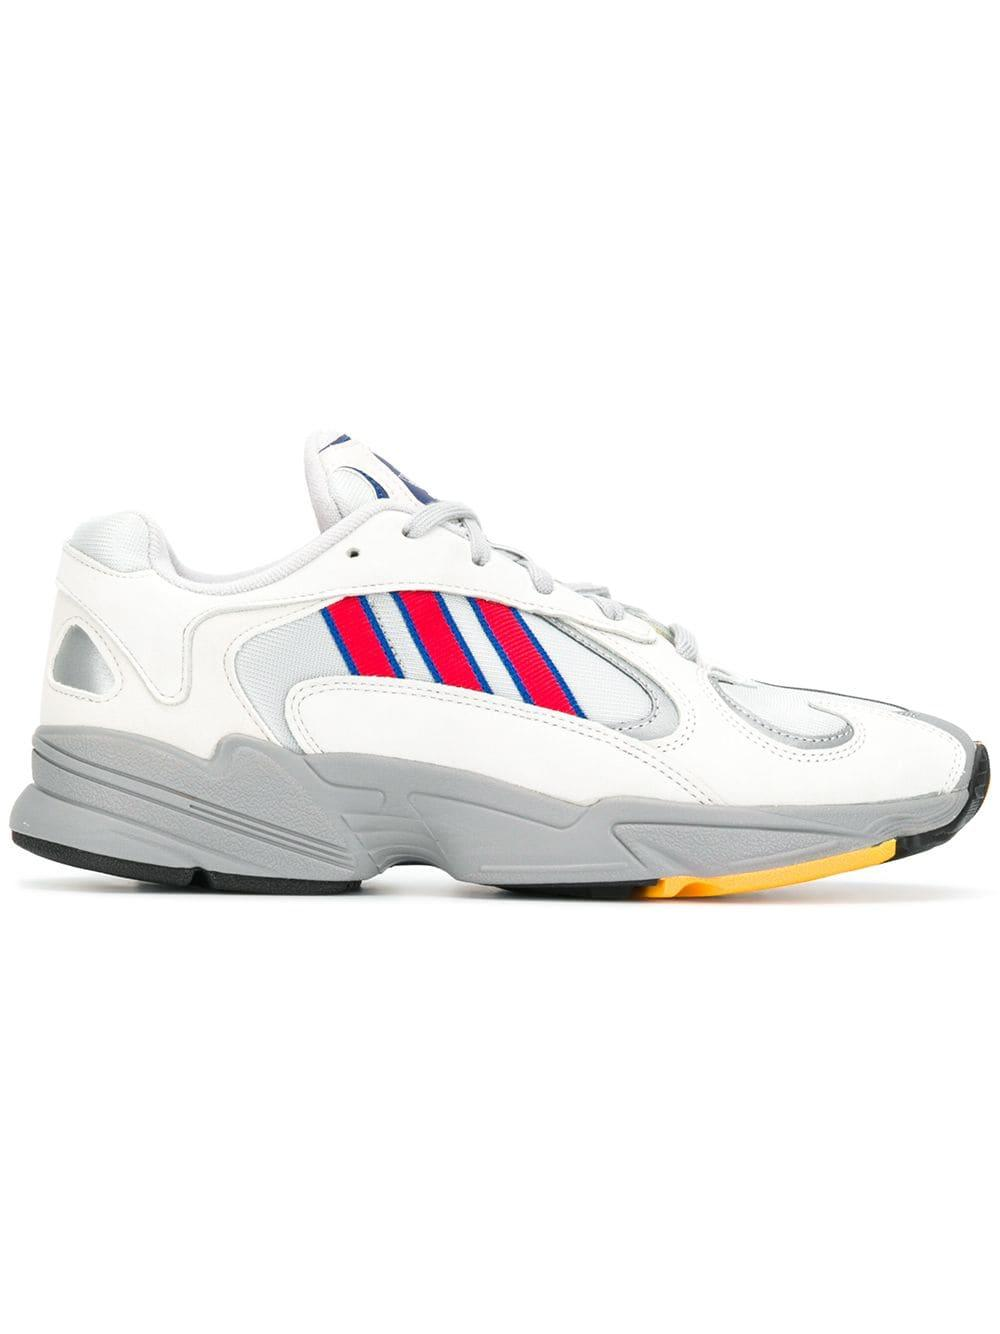 48331401d97af adidas Yung-1 Sneakers in Gray for Men - Lyst